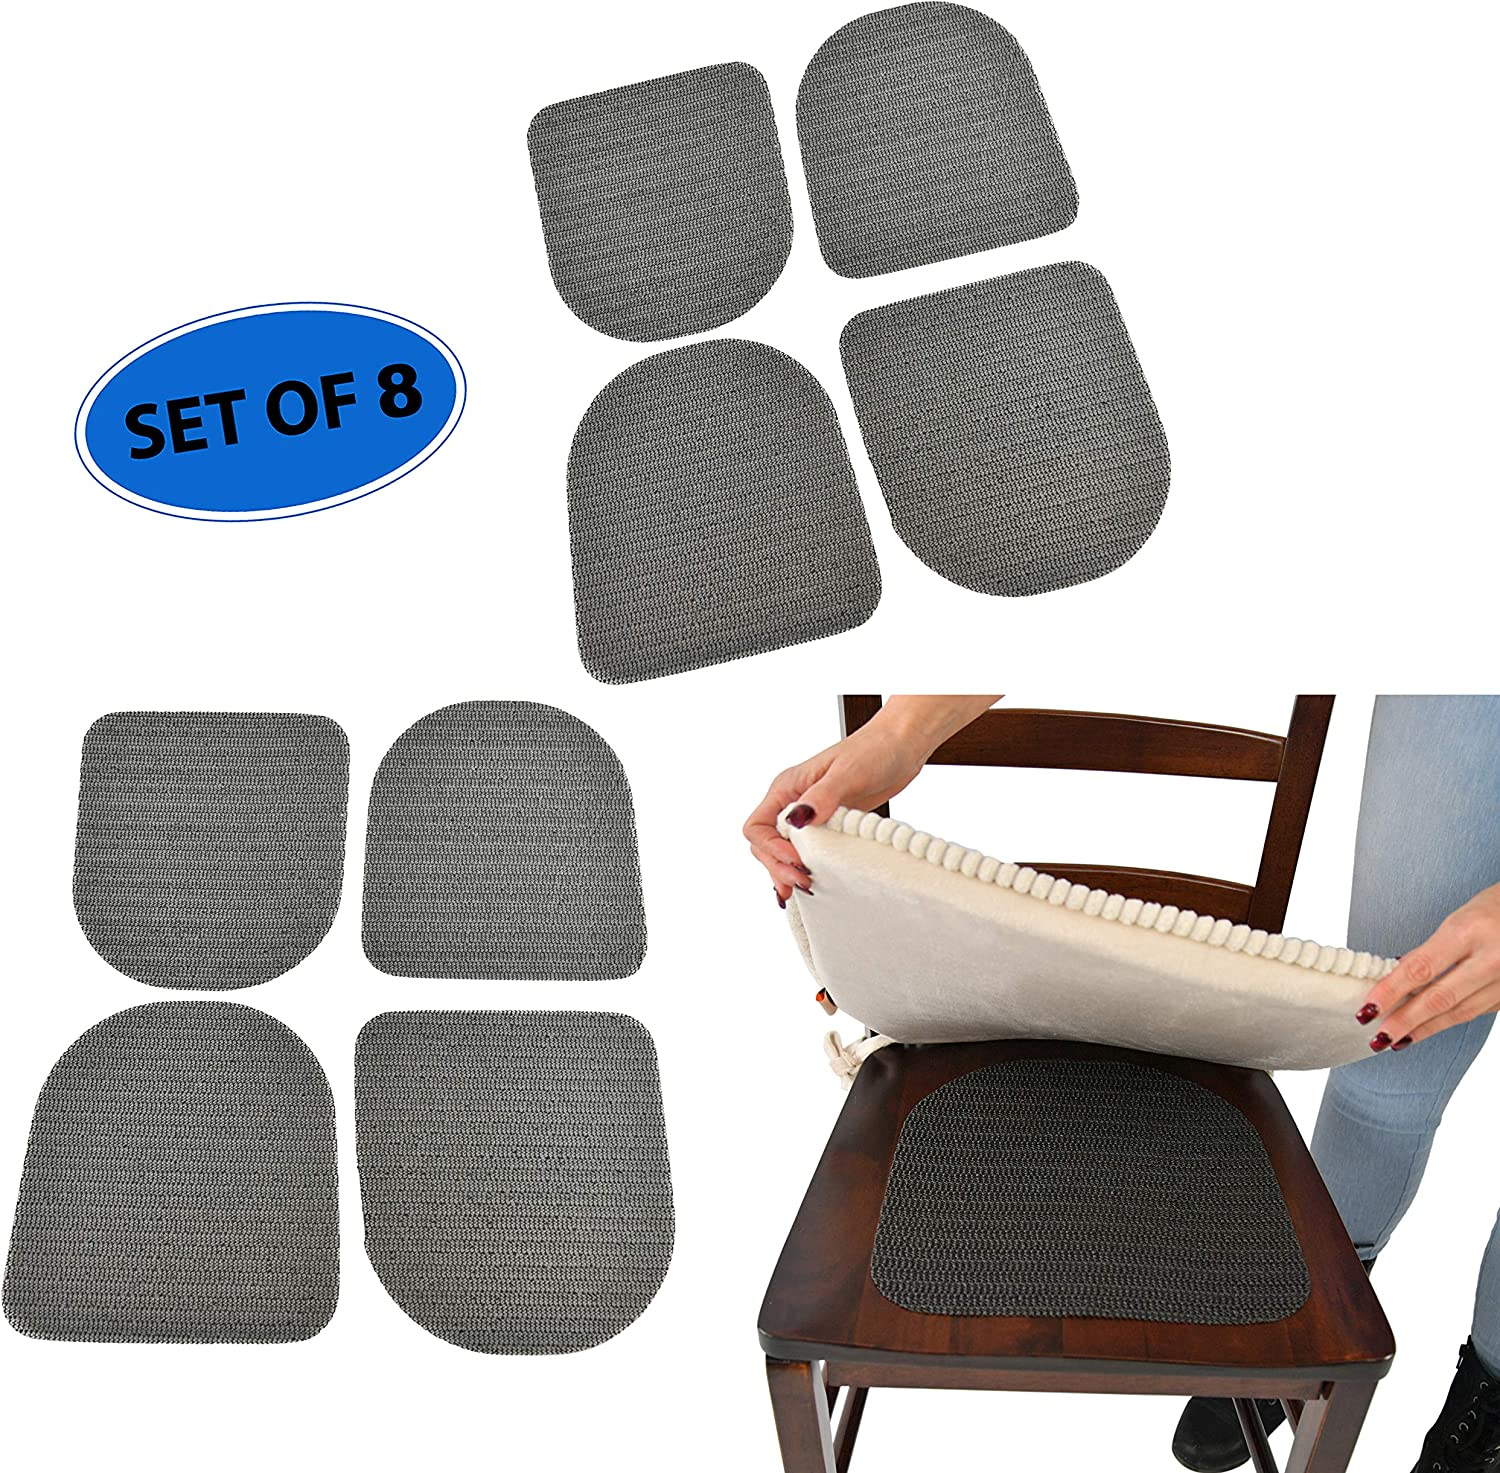 Home-X Furniture Seat Pads with Grip, 3 Patio and Kitchen Chair Non-Slip  Traction Mats